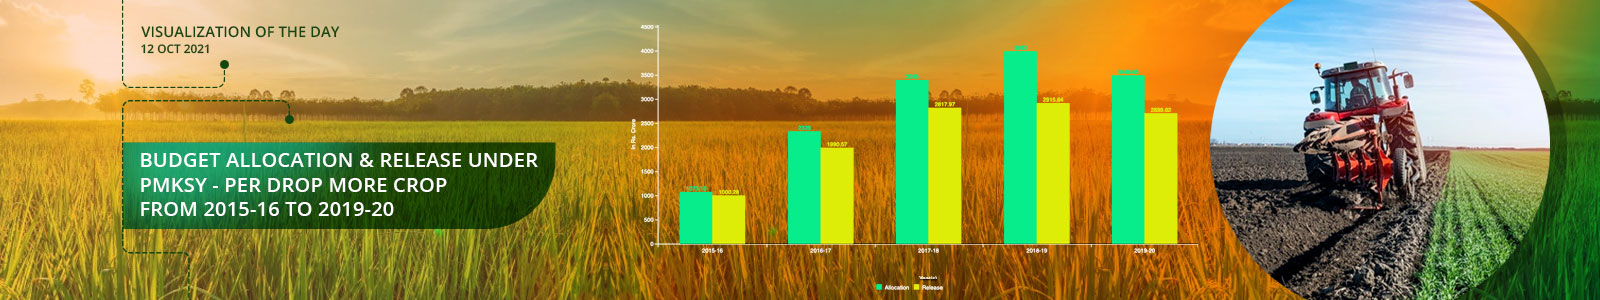 Budget Allocation & Release under PMKSY - Per Drop More Crop from 2015-16 to 2019-20